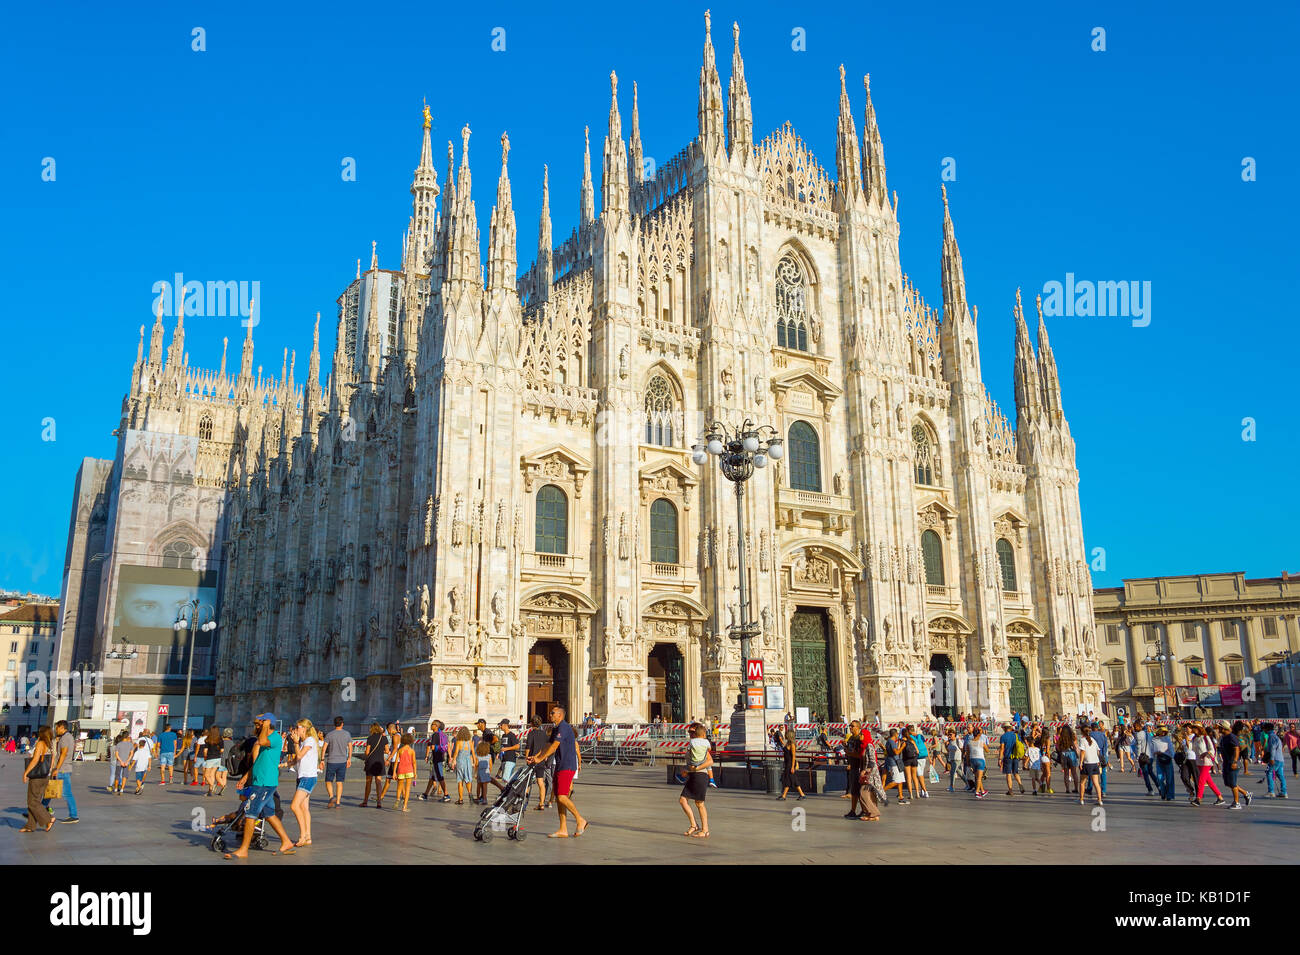 MILAN, ITALY - AUG 17, 2017: Tourists visiting Milan Cathedral (Duomo Milano). It is the largest church in Italy - Stock Image